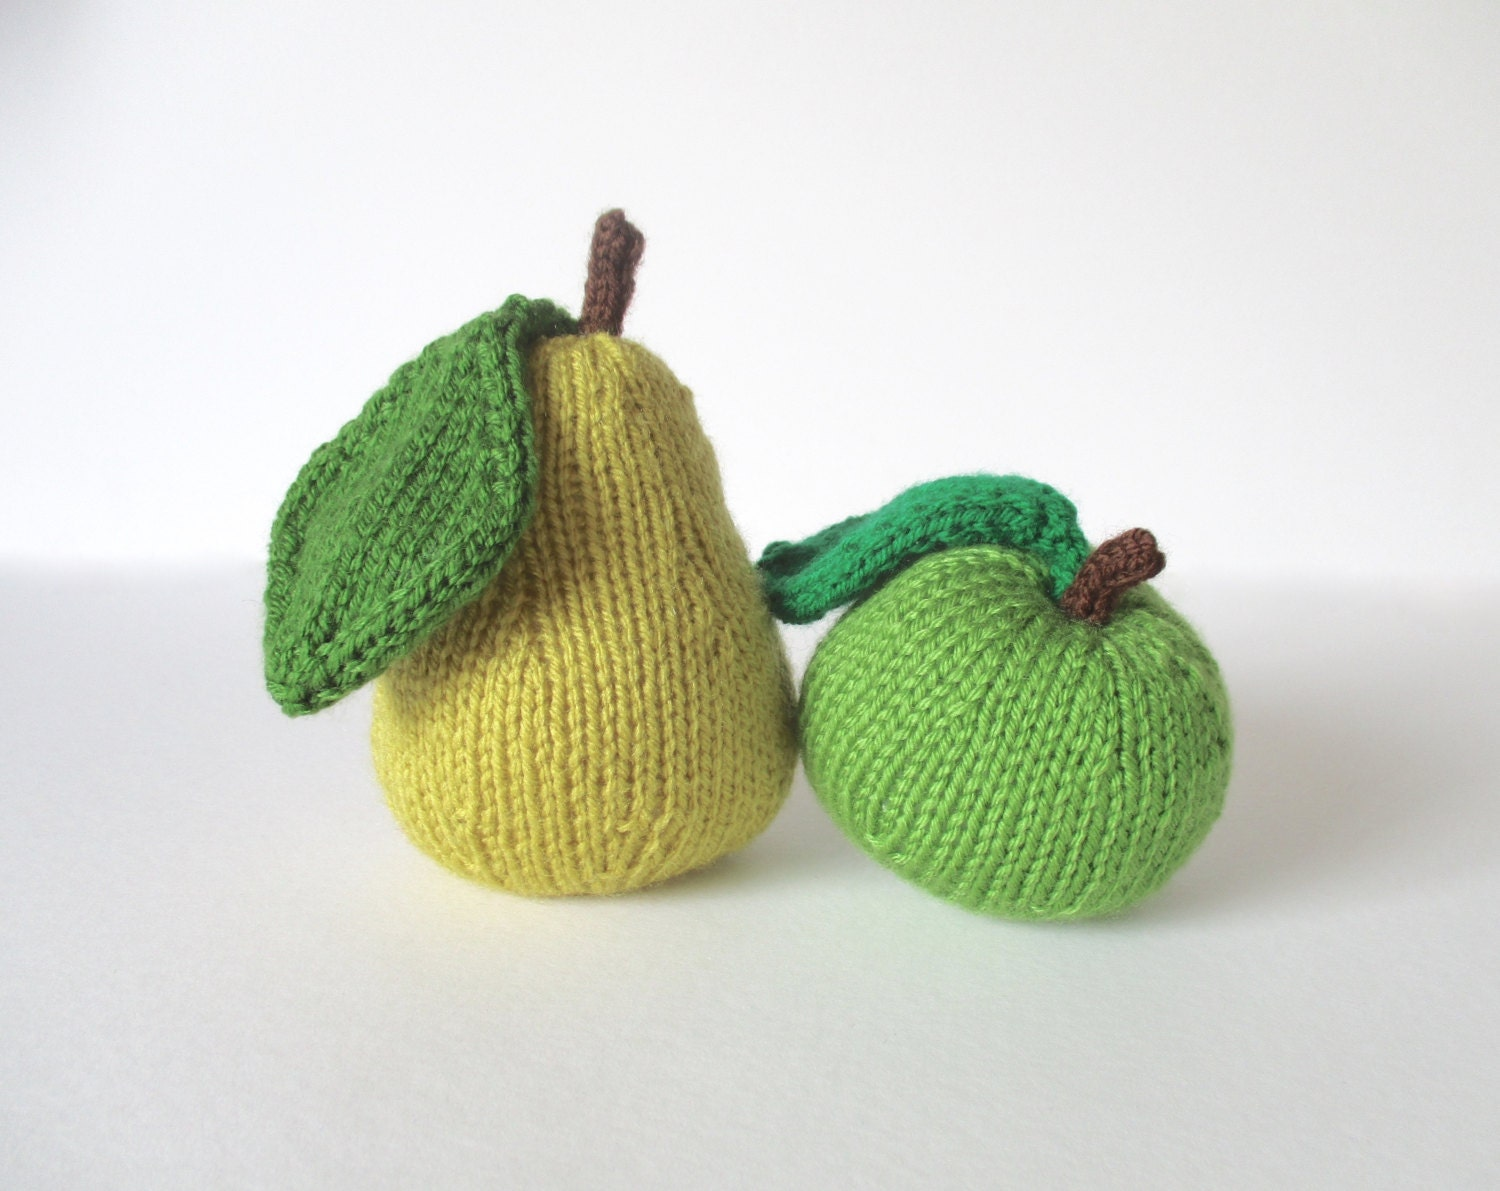 Apple & Pear toy knitting patterns